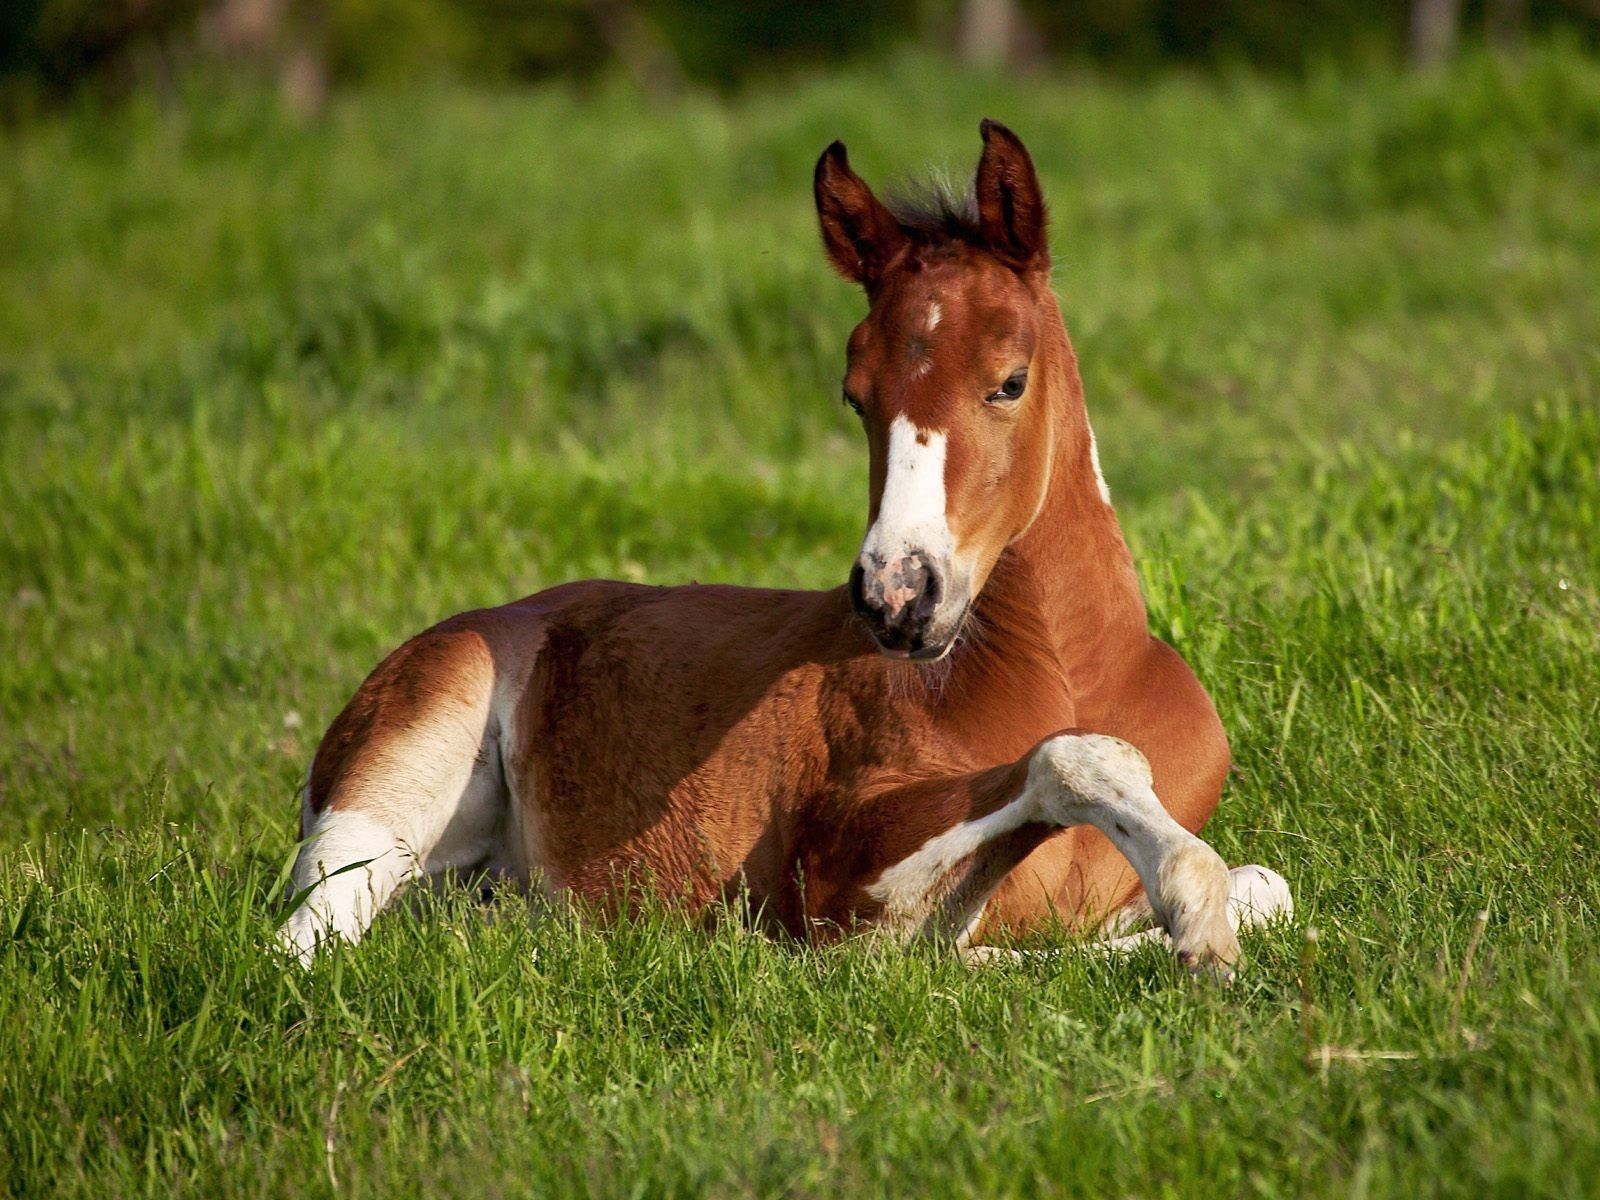 149234 download wallpaper Animals, Horse, Stallion, Grass, To Lie Down, Lie screensavers and pictures for free